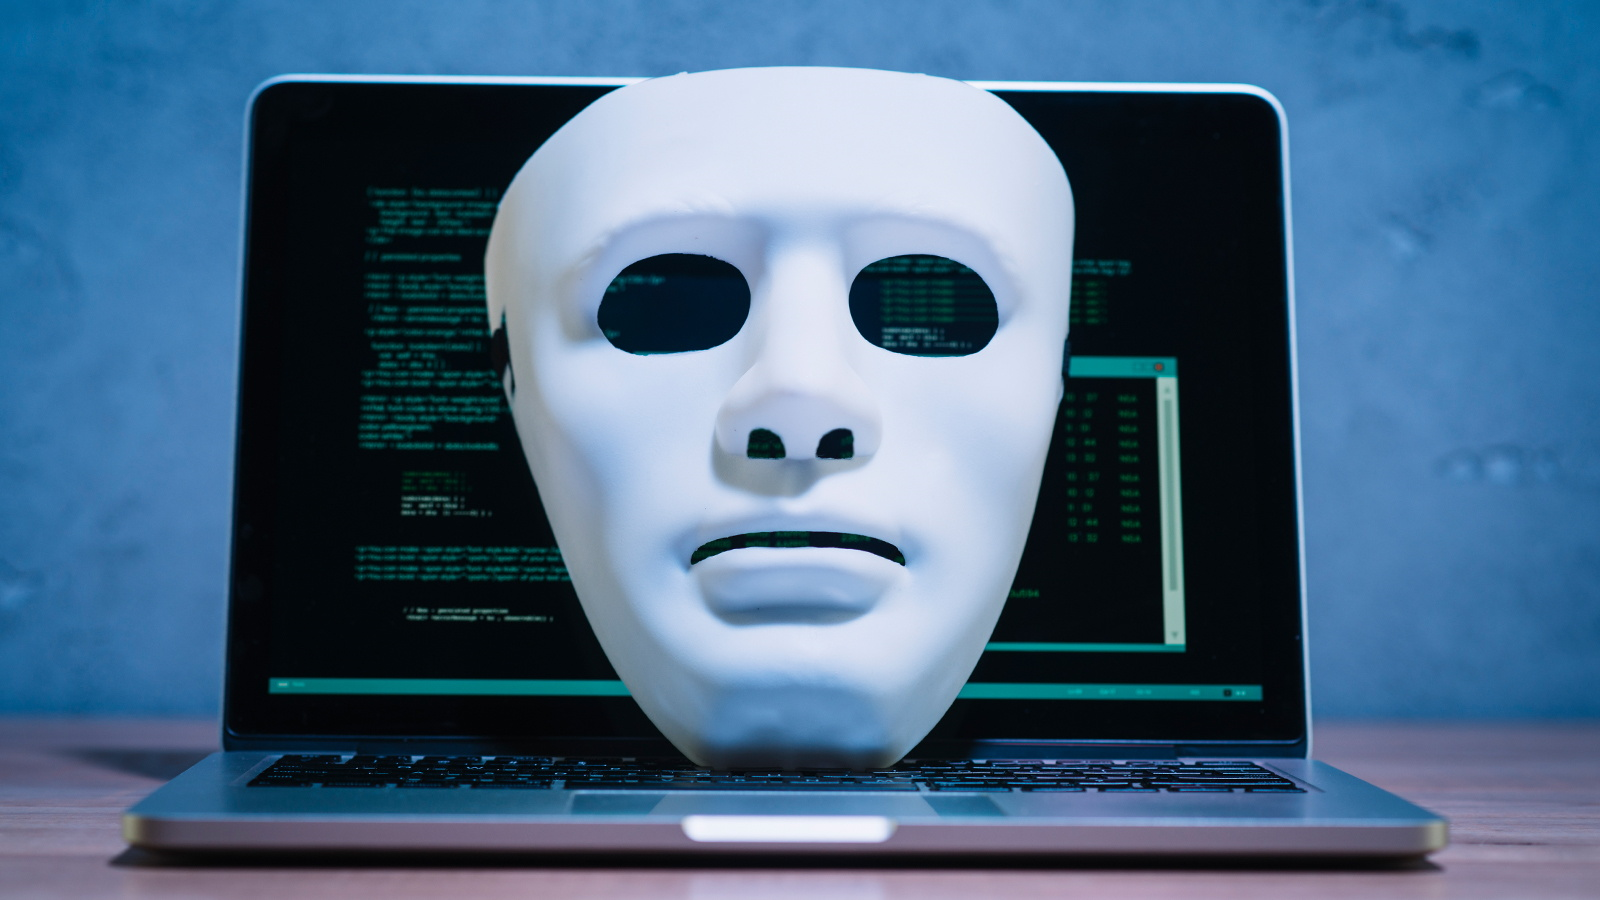 Hacker Mask on Computer